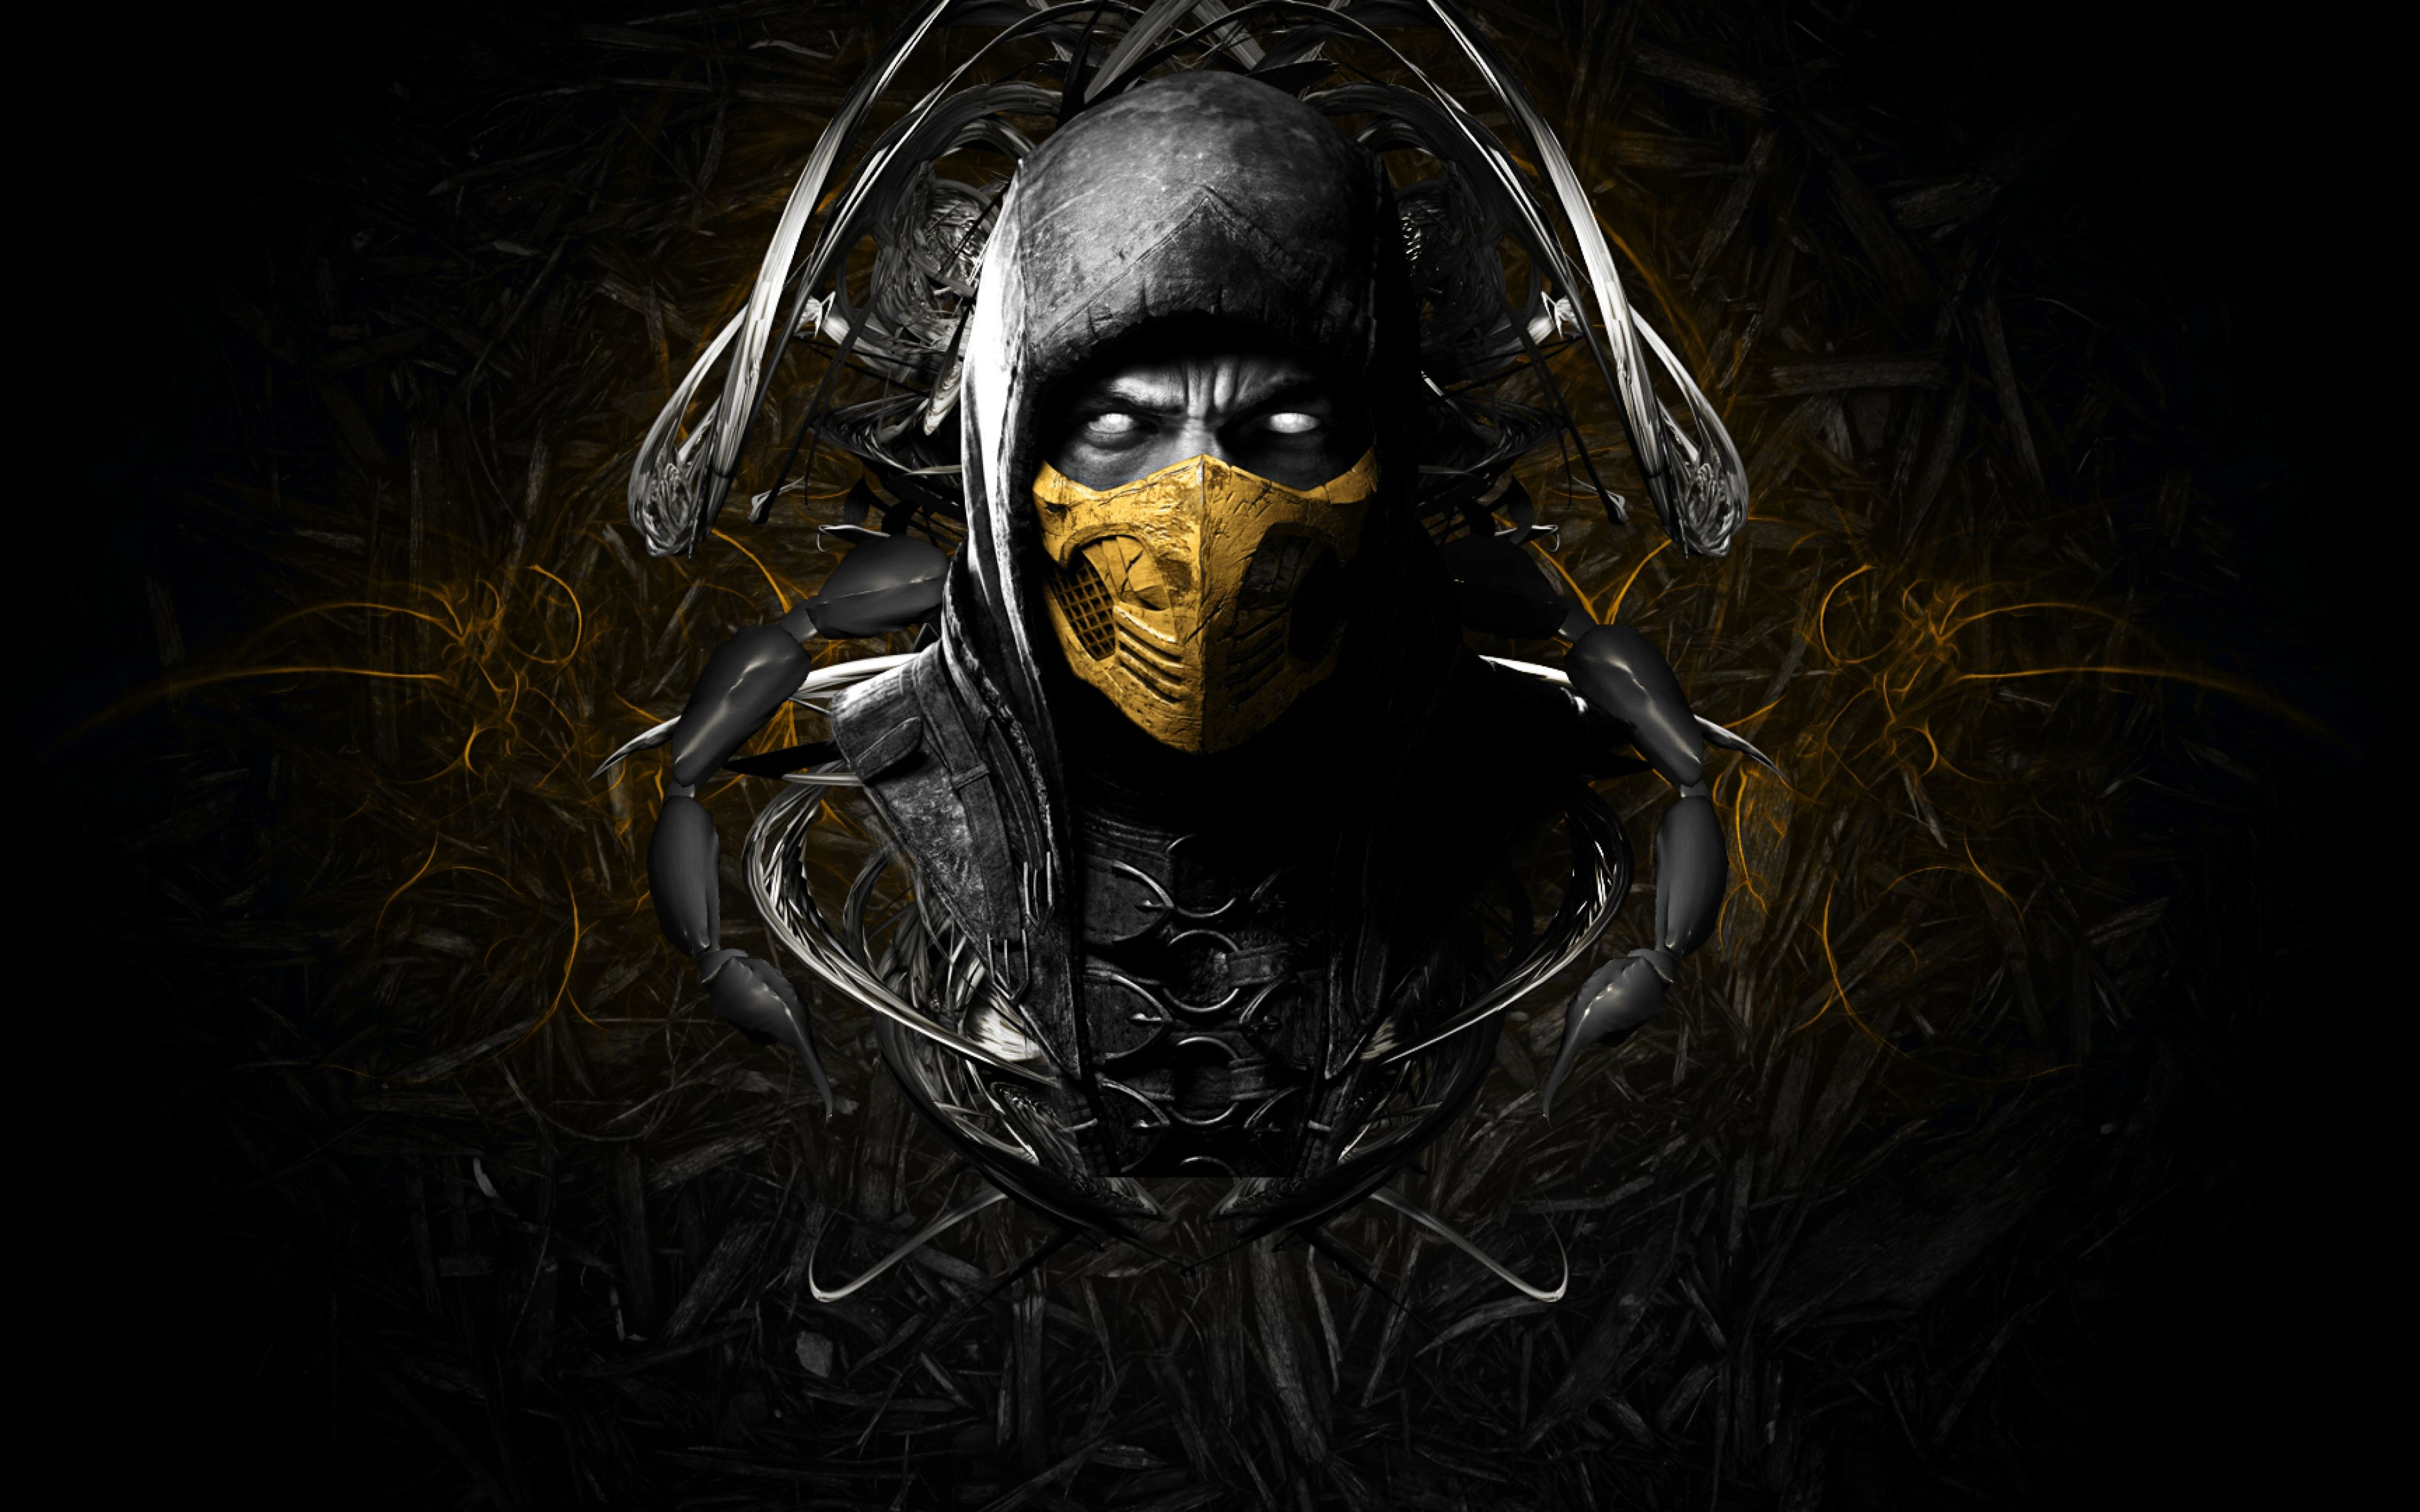 Scorpion Wallpapers - Top Free Scorpion